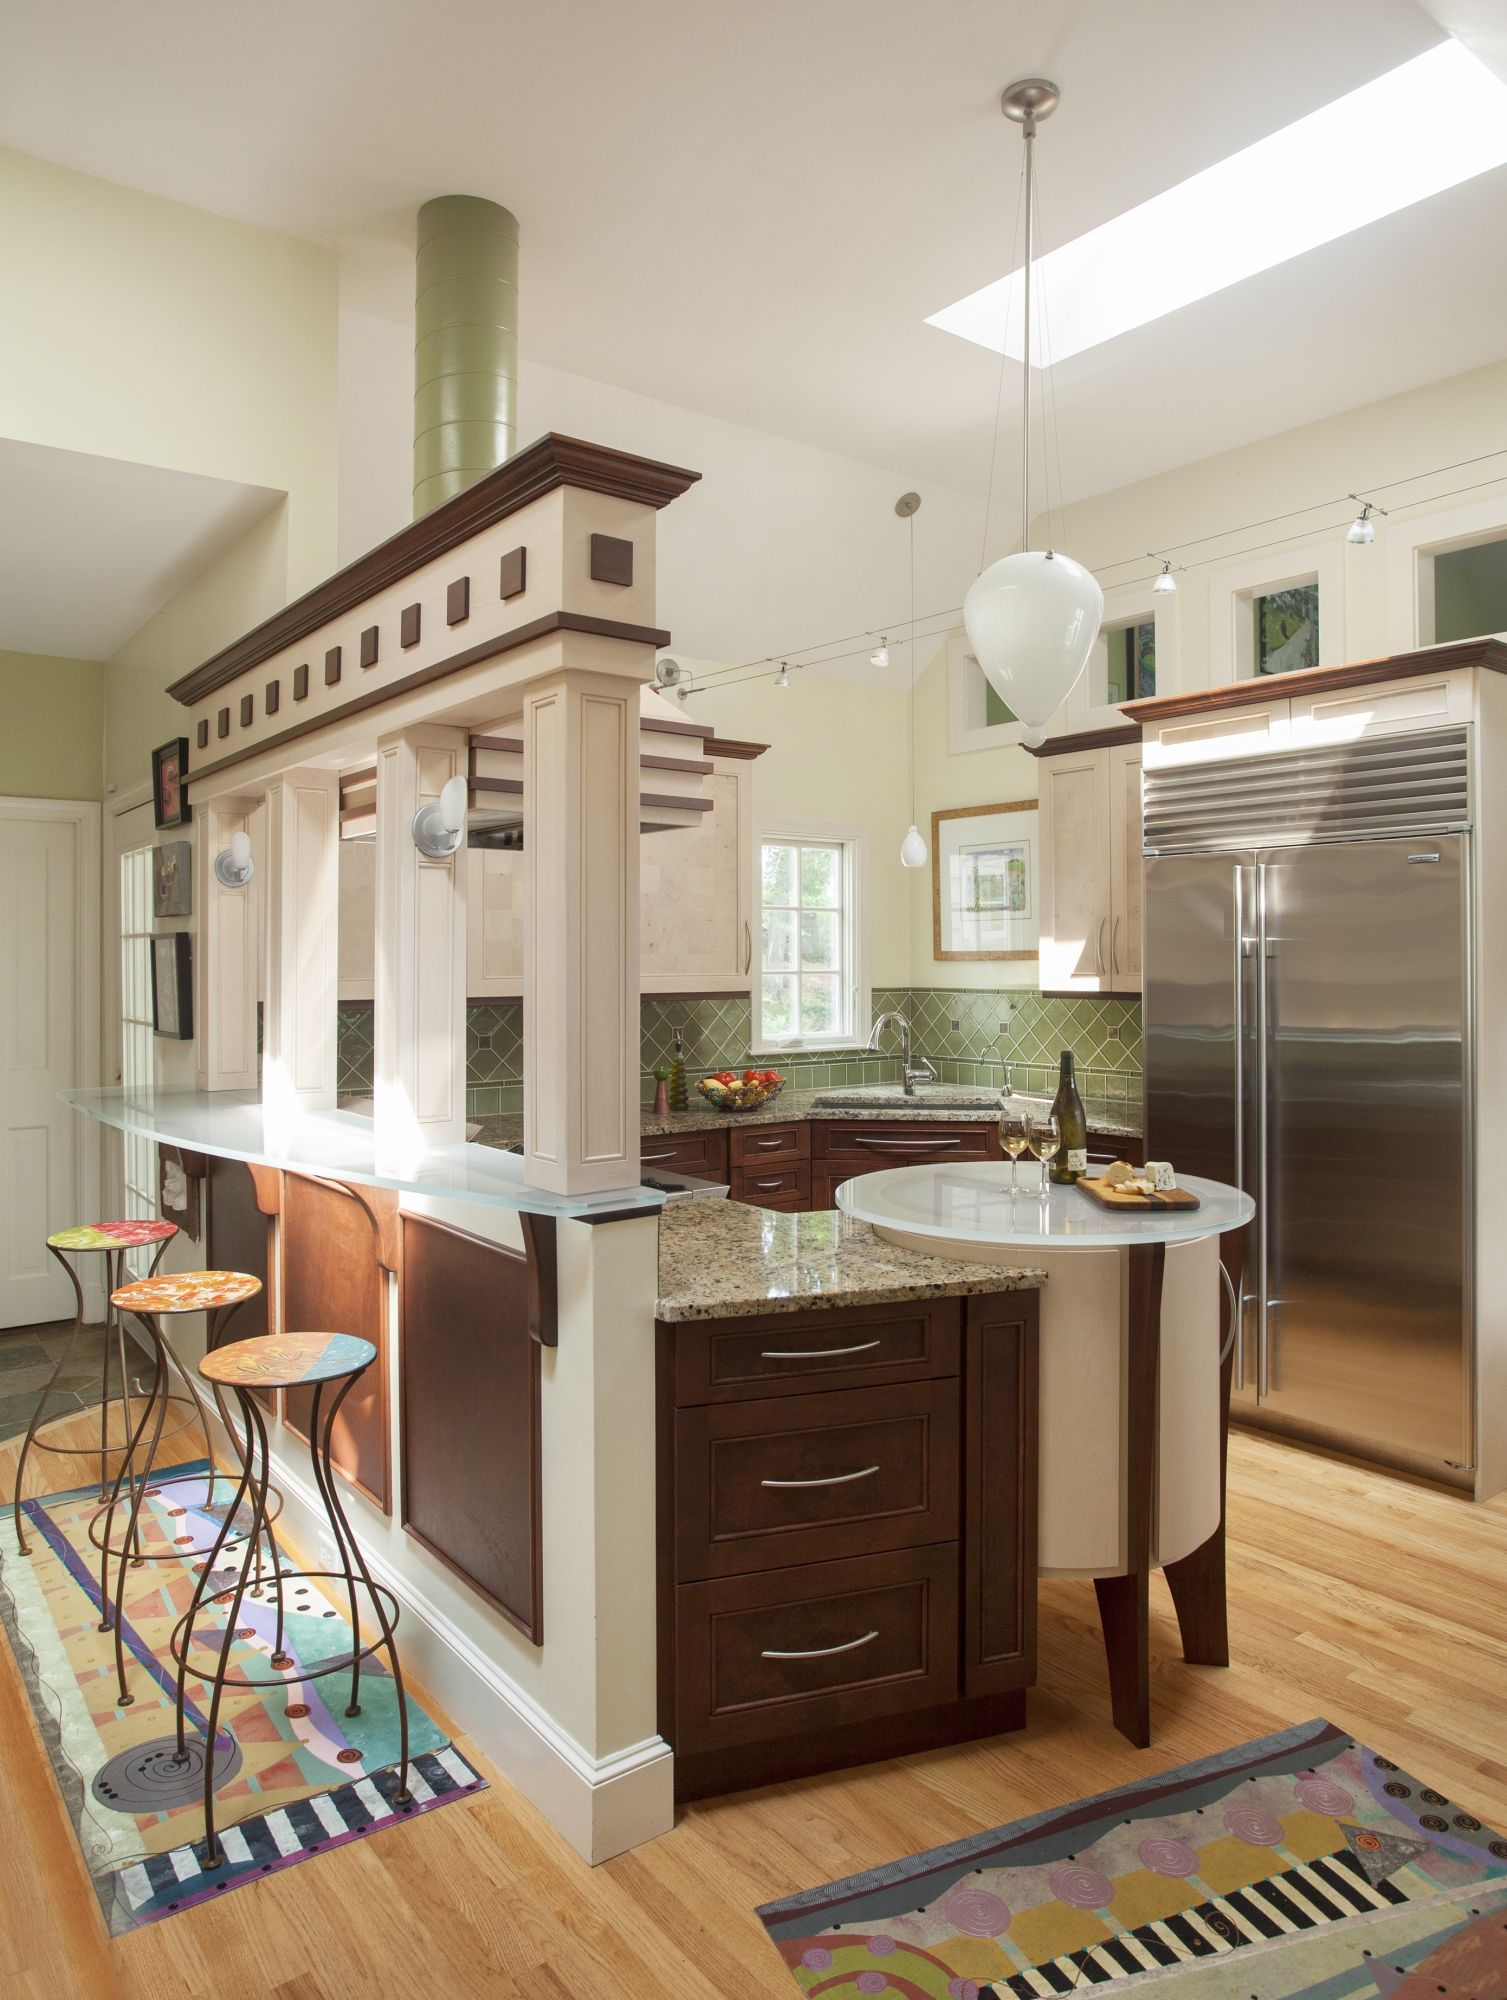 Art Deco Kitchen  Art deco kitchen, Home kitchens, Eclectic kitchen